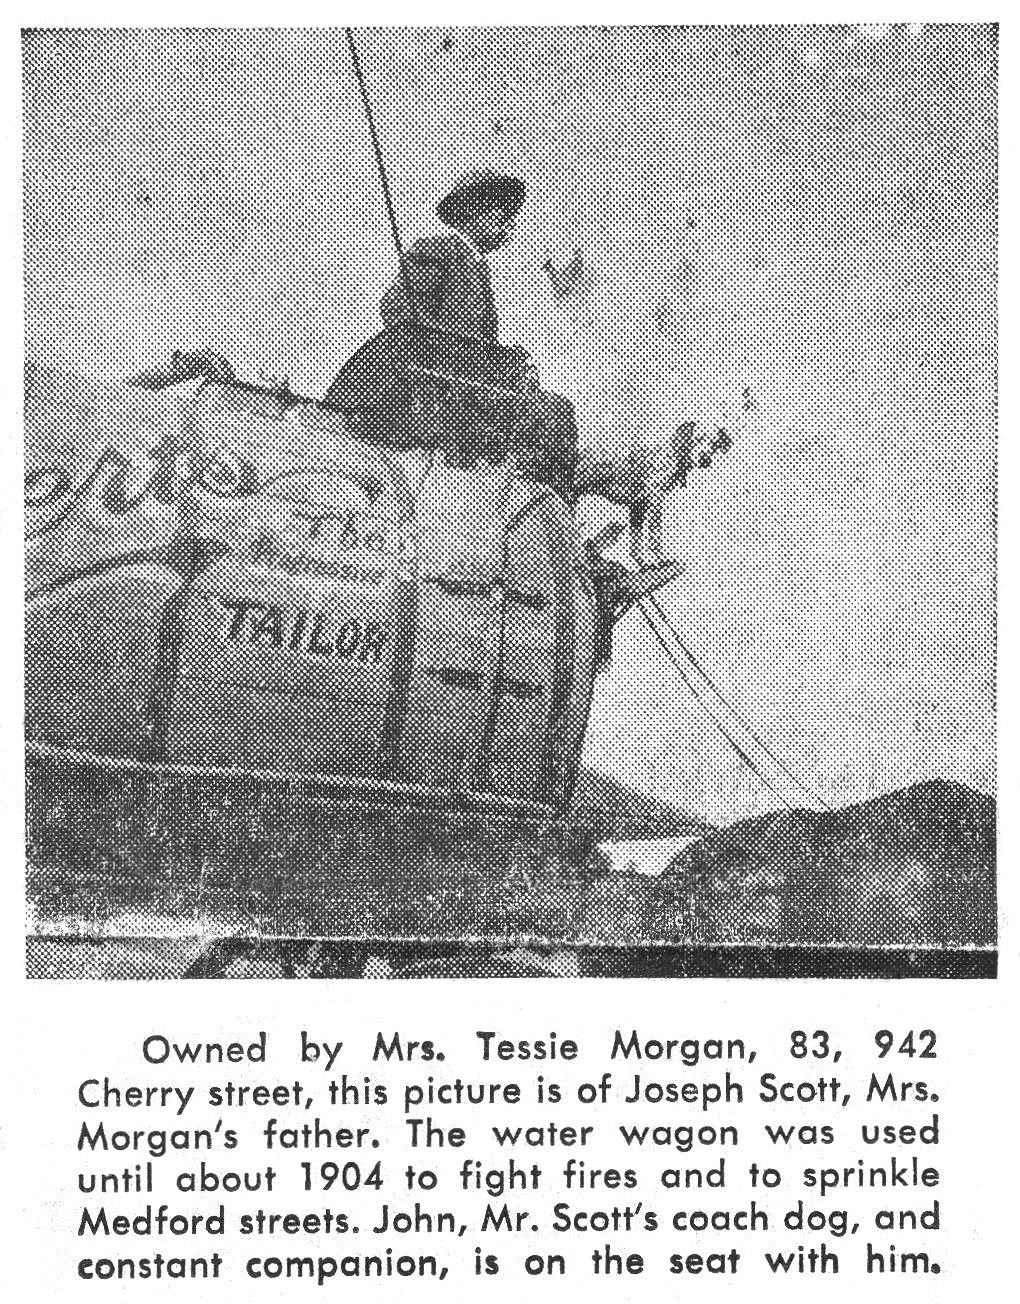 Street Sprinkler Water Wagon, February 27, 1955 Medford Mail Tribune